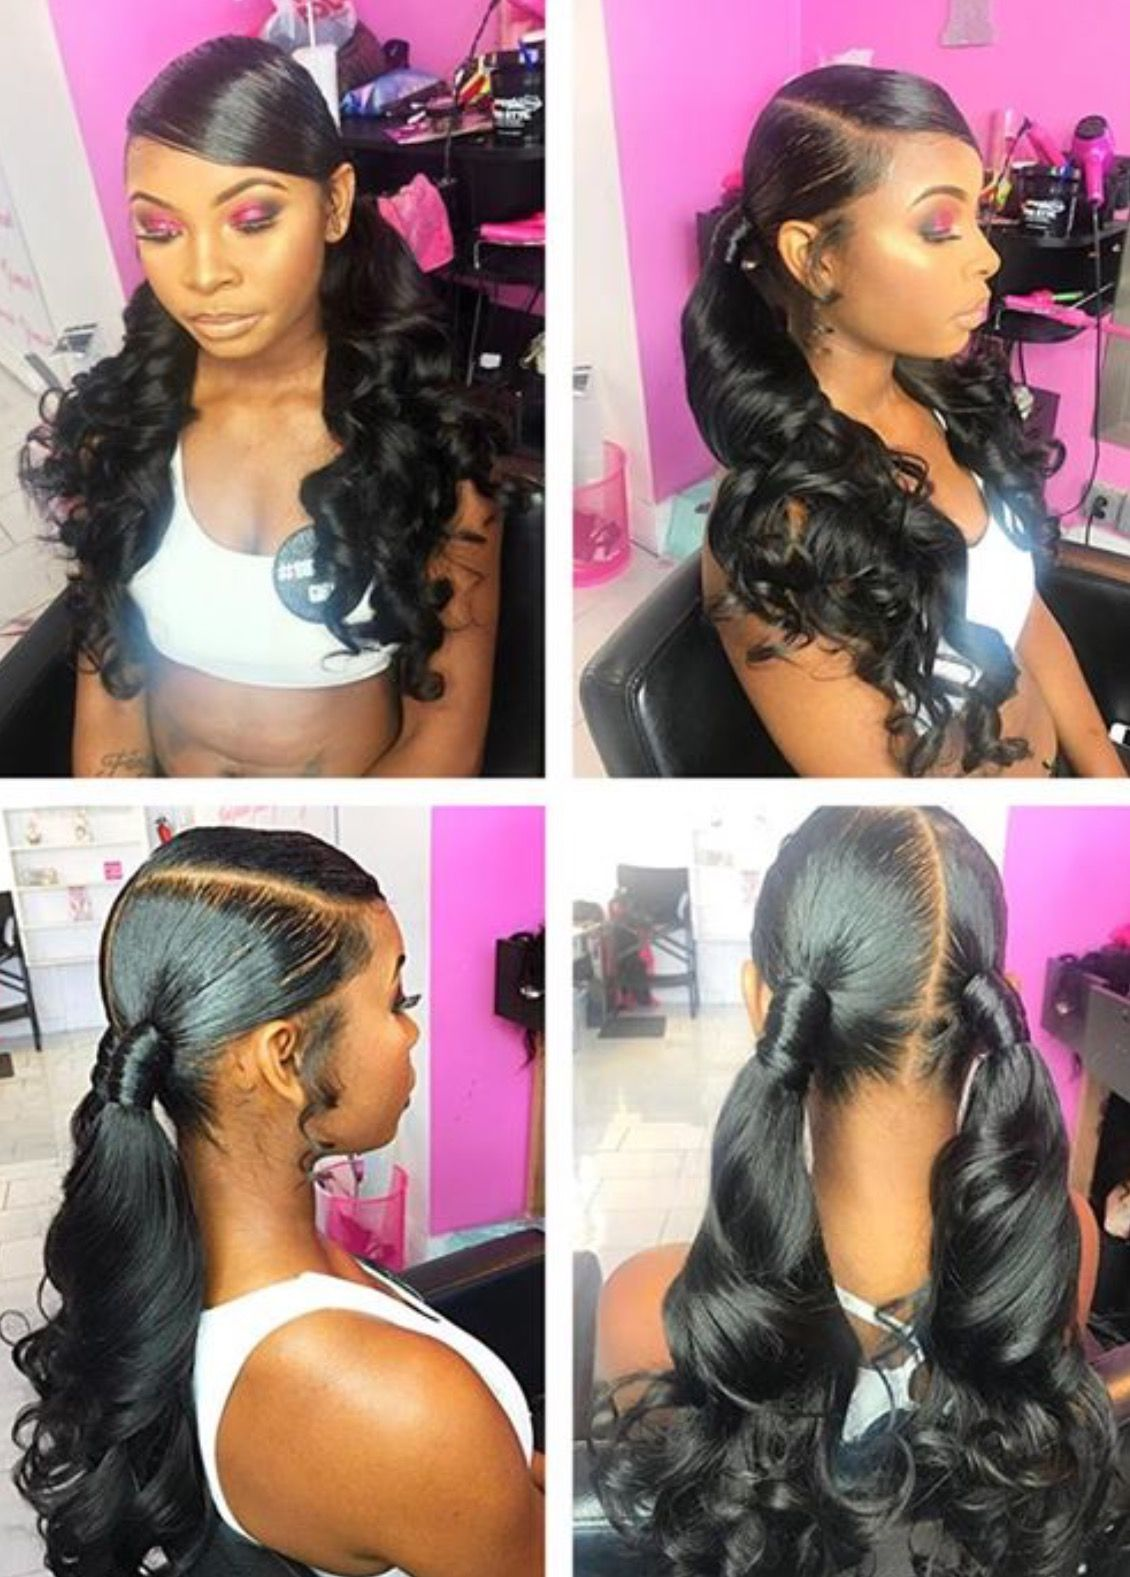 Pin by Weddz on Hair ideas Pinterest Ponytail Hair style and